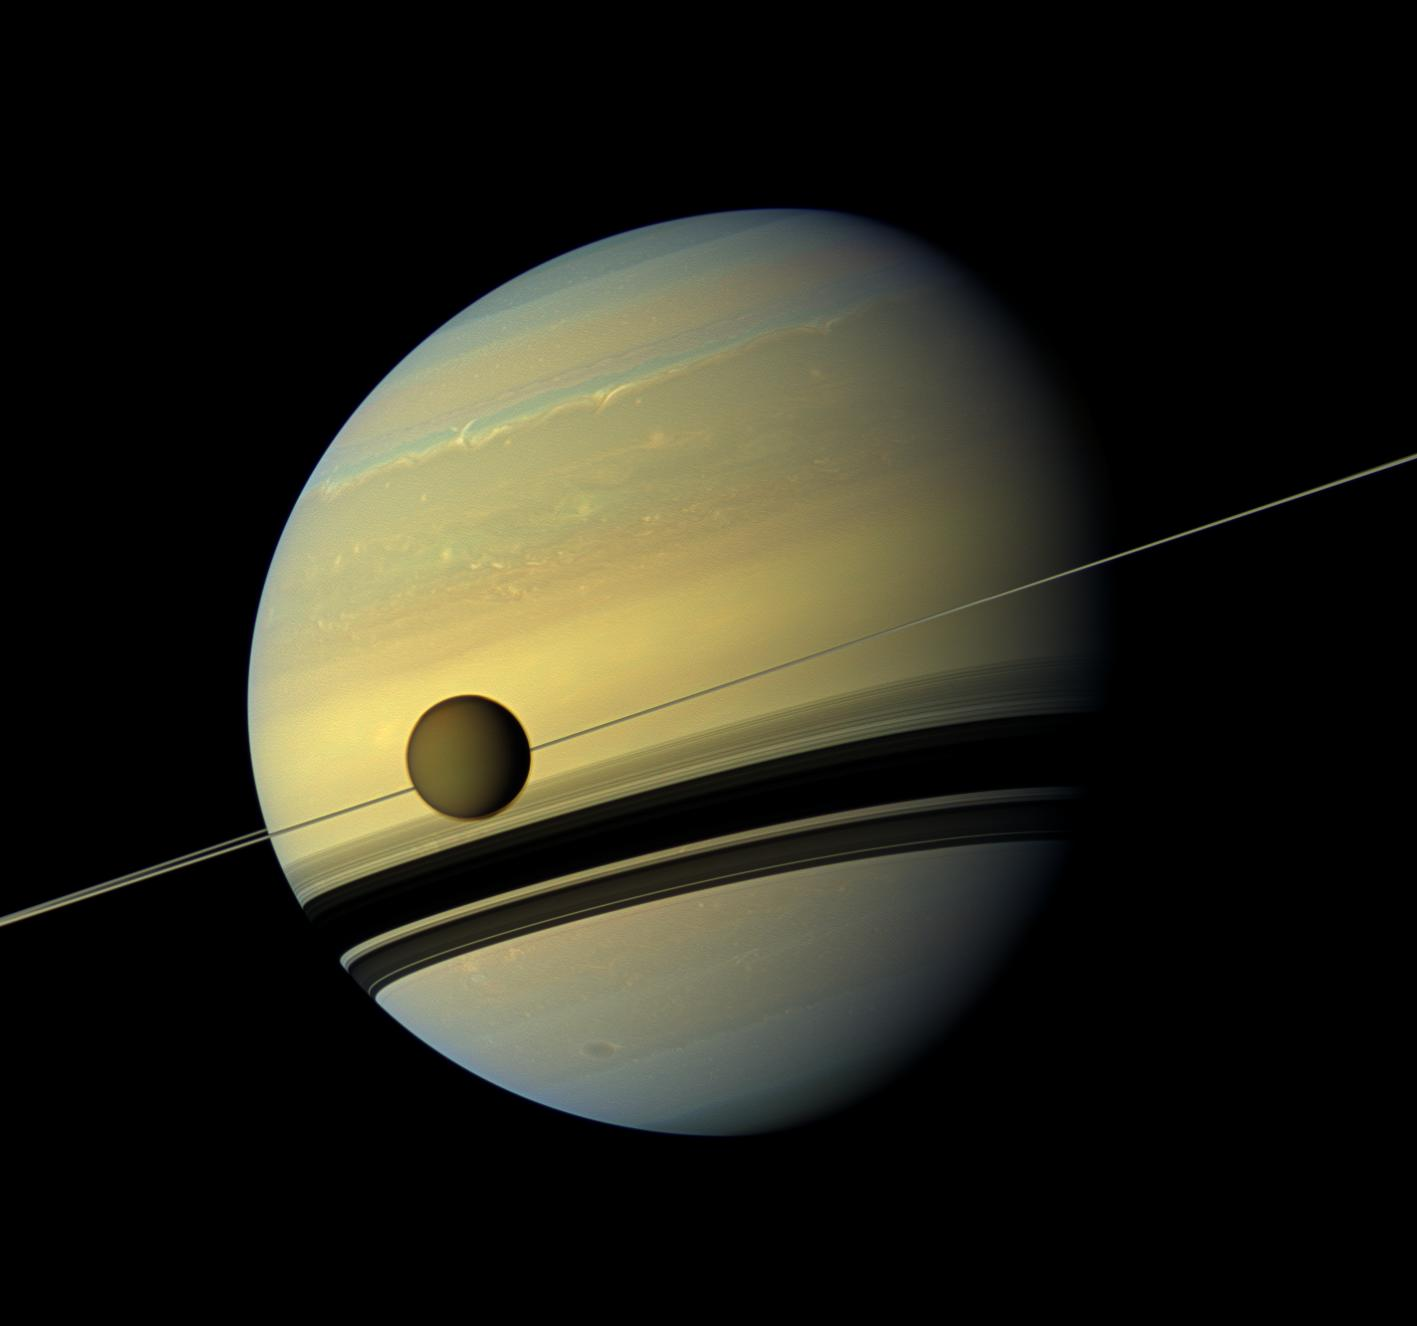 This Cassini image from 2012 shows Titan and its parent planet Saturn.